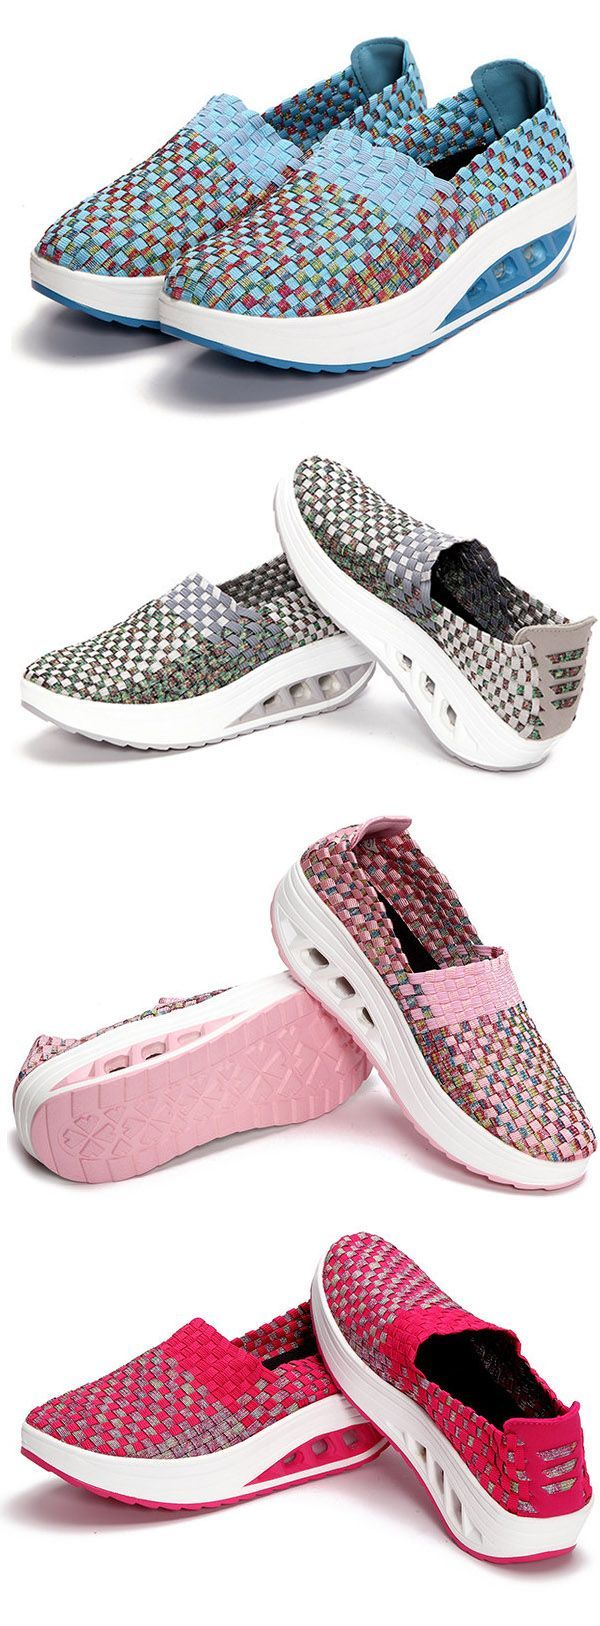 $24.40 Platform Color Match Casual Rocker Sole Sport Slip On Shoes,sport shoes women,sport shoes outfit,sport shoes fashion,running sport shoes